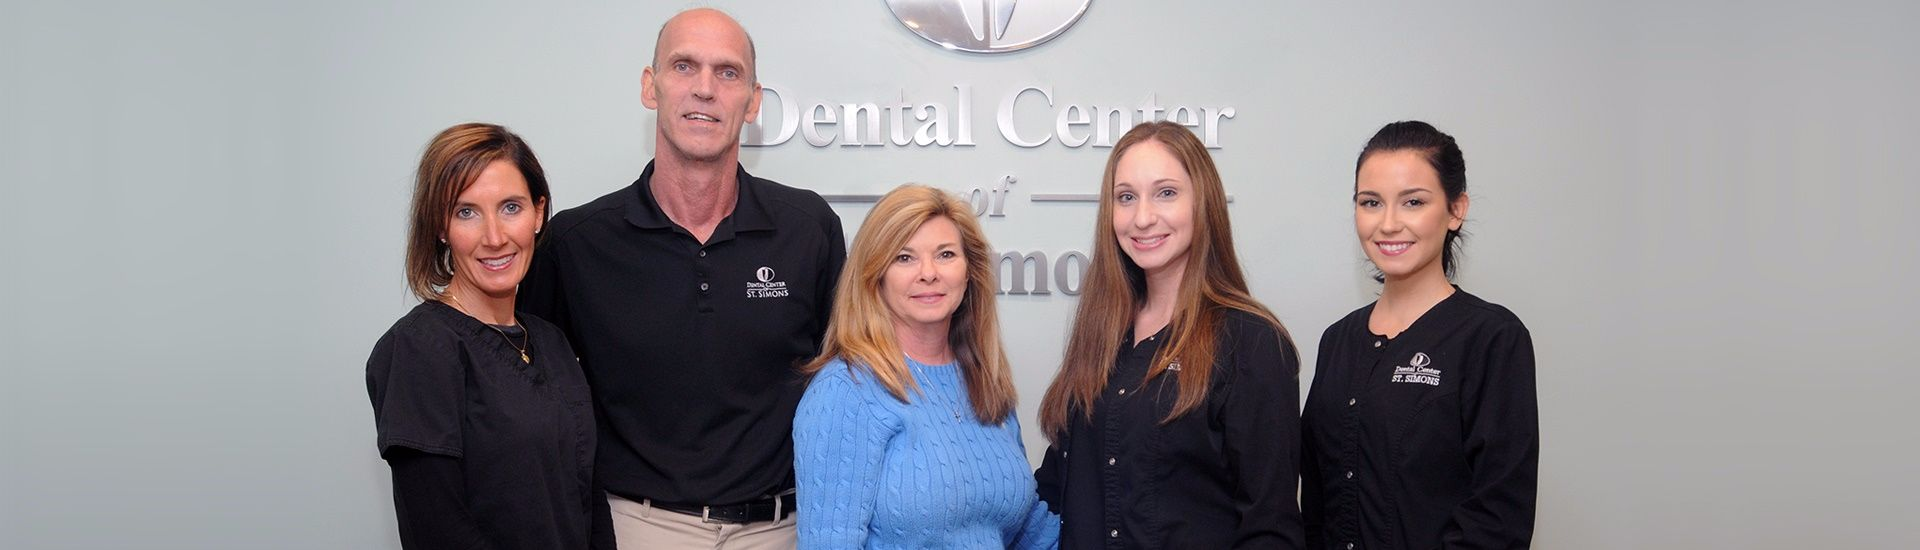 St. Simons Dental Services